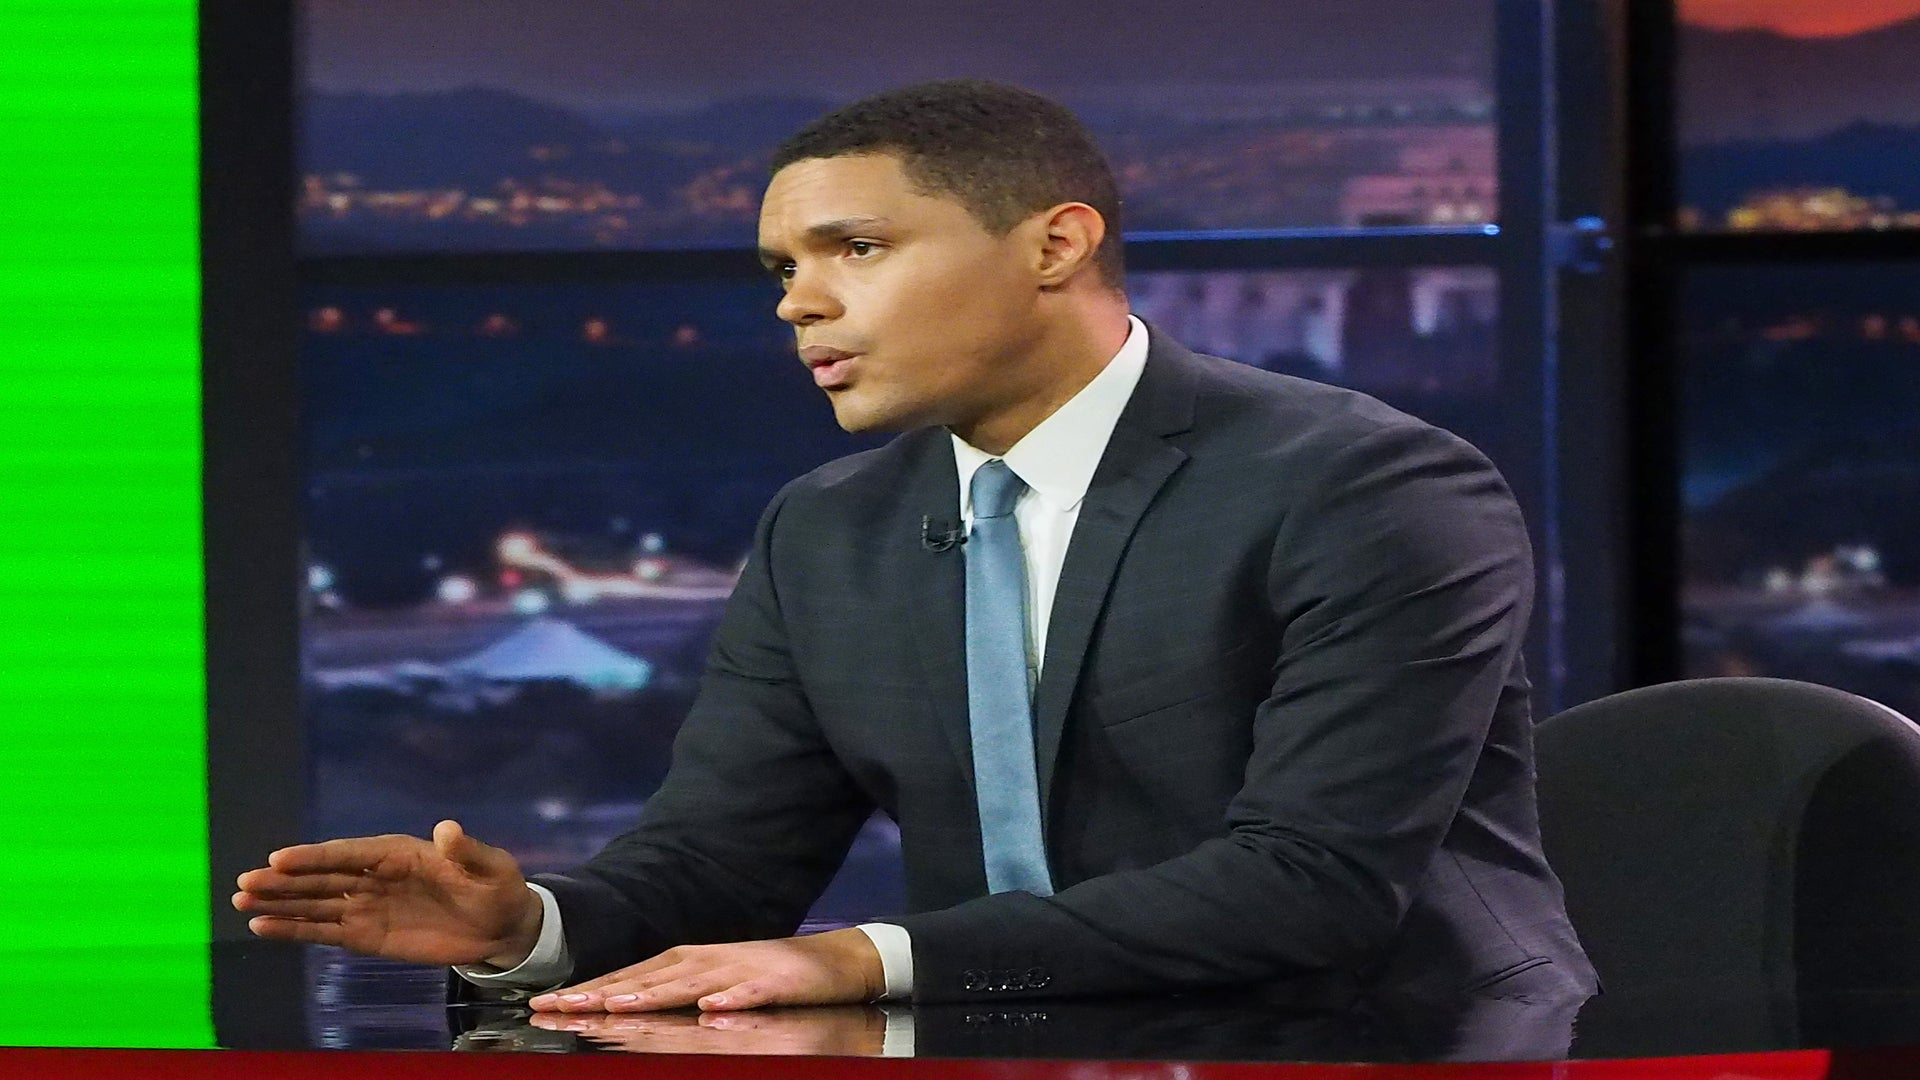 Daily Show Host Trevor Noah's (Unexpected!) No. 1 Flirting Tip: 'Never Open with a Joke'